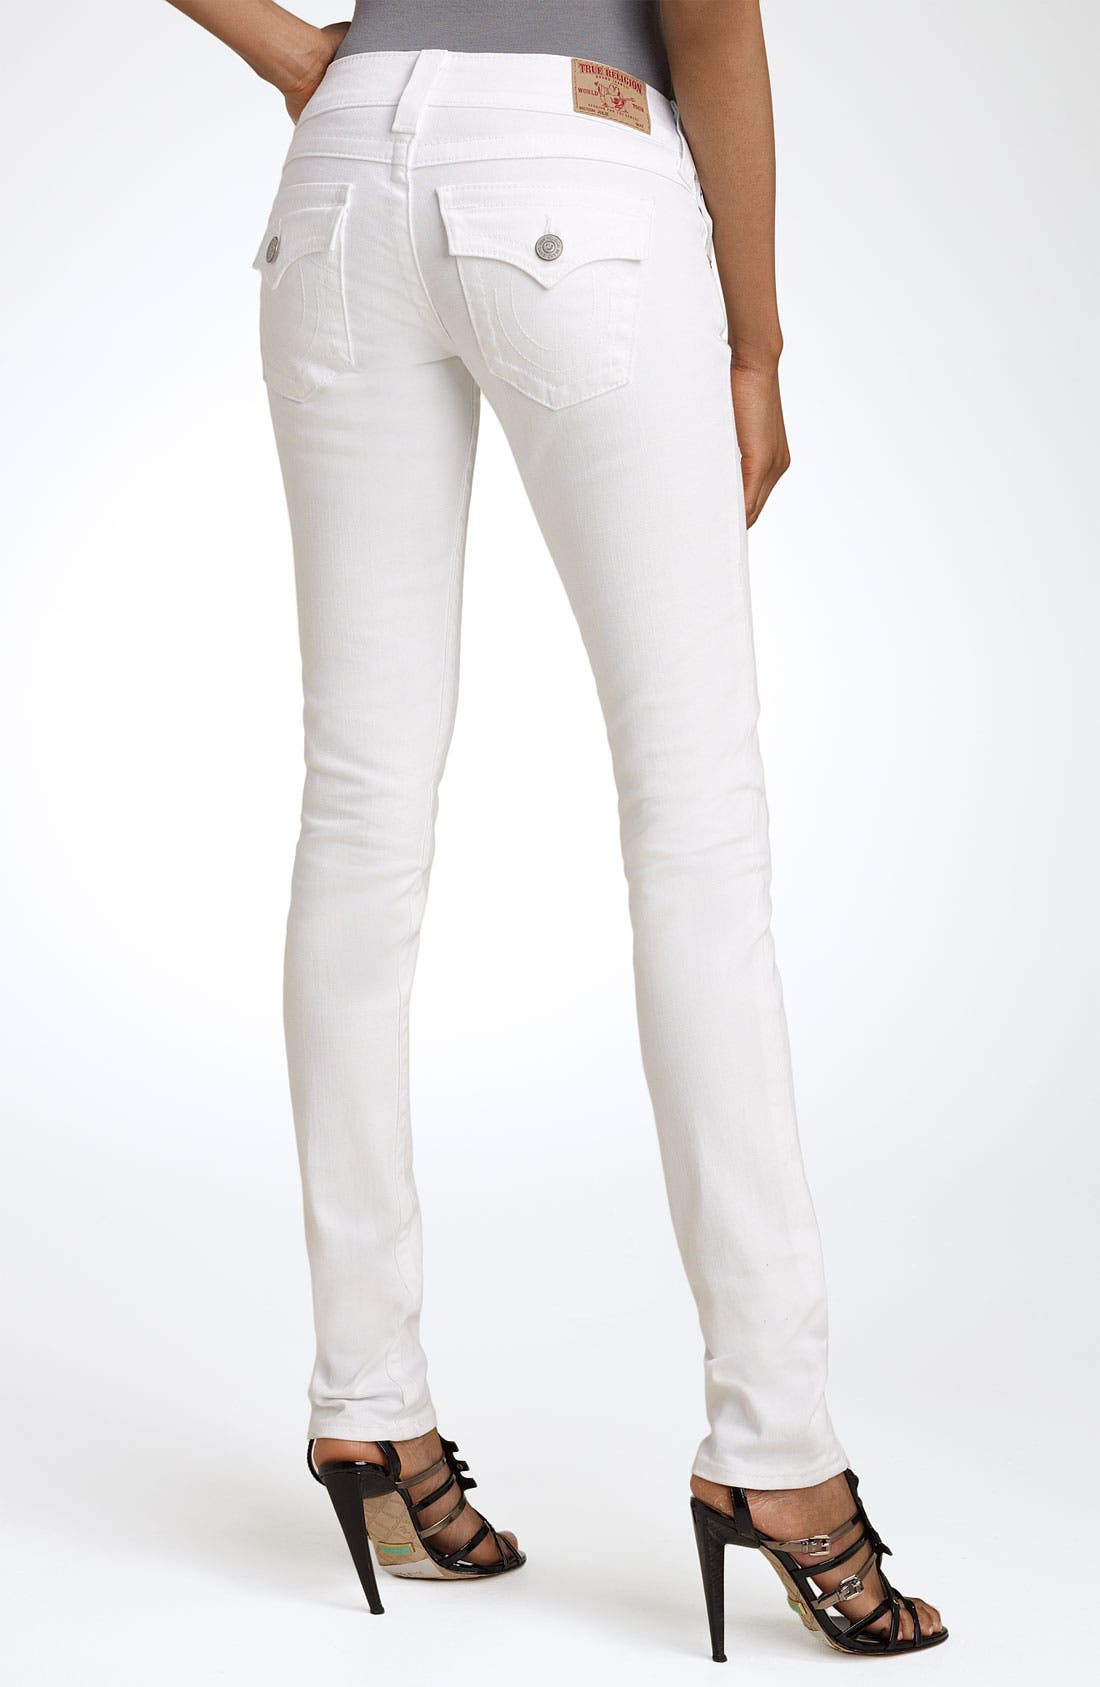 Alternate Image 1 Selected - True Religion Brand Jeans 'Julie' Skinny Stretch Jeans (Body Rinse White)